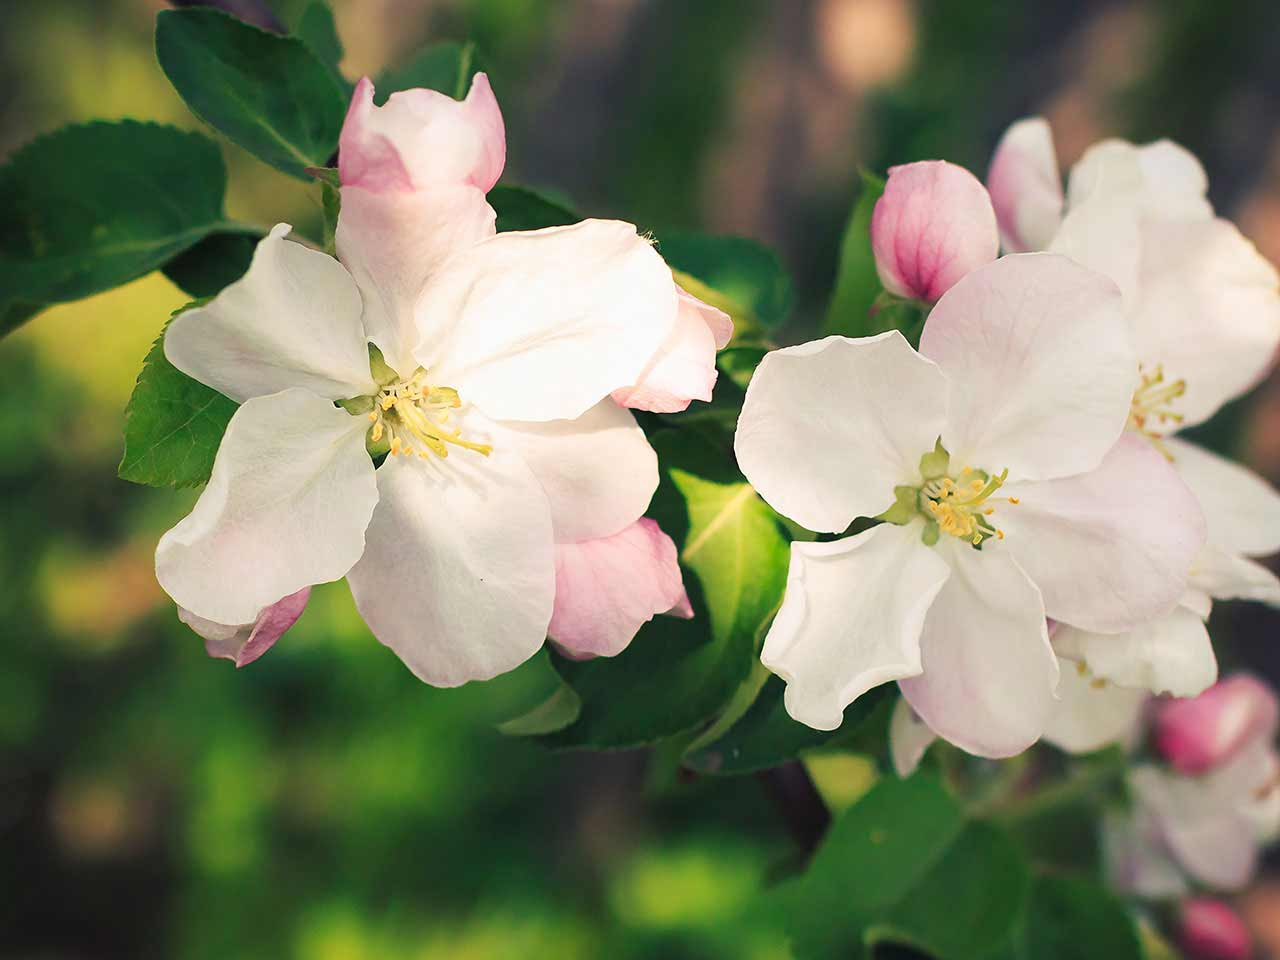 Blooming apple blossom